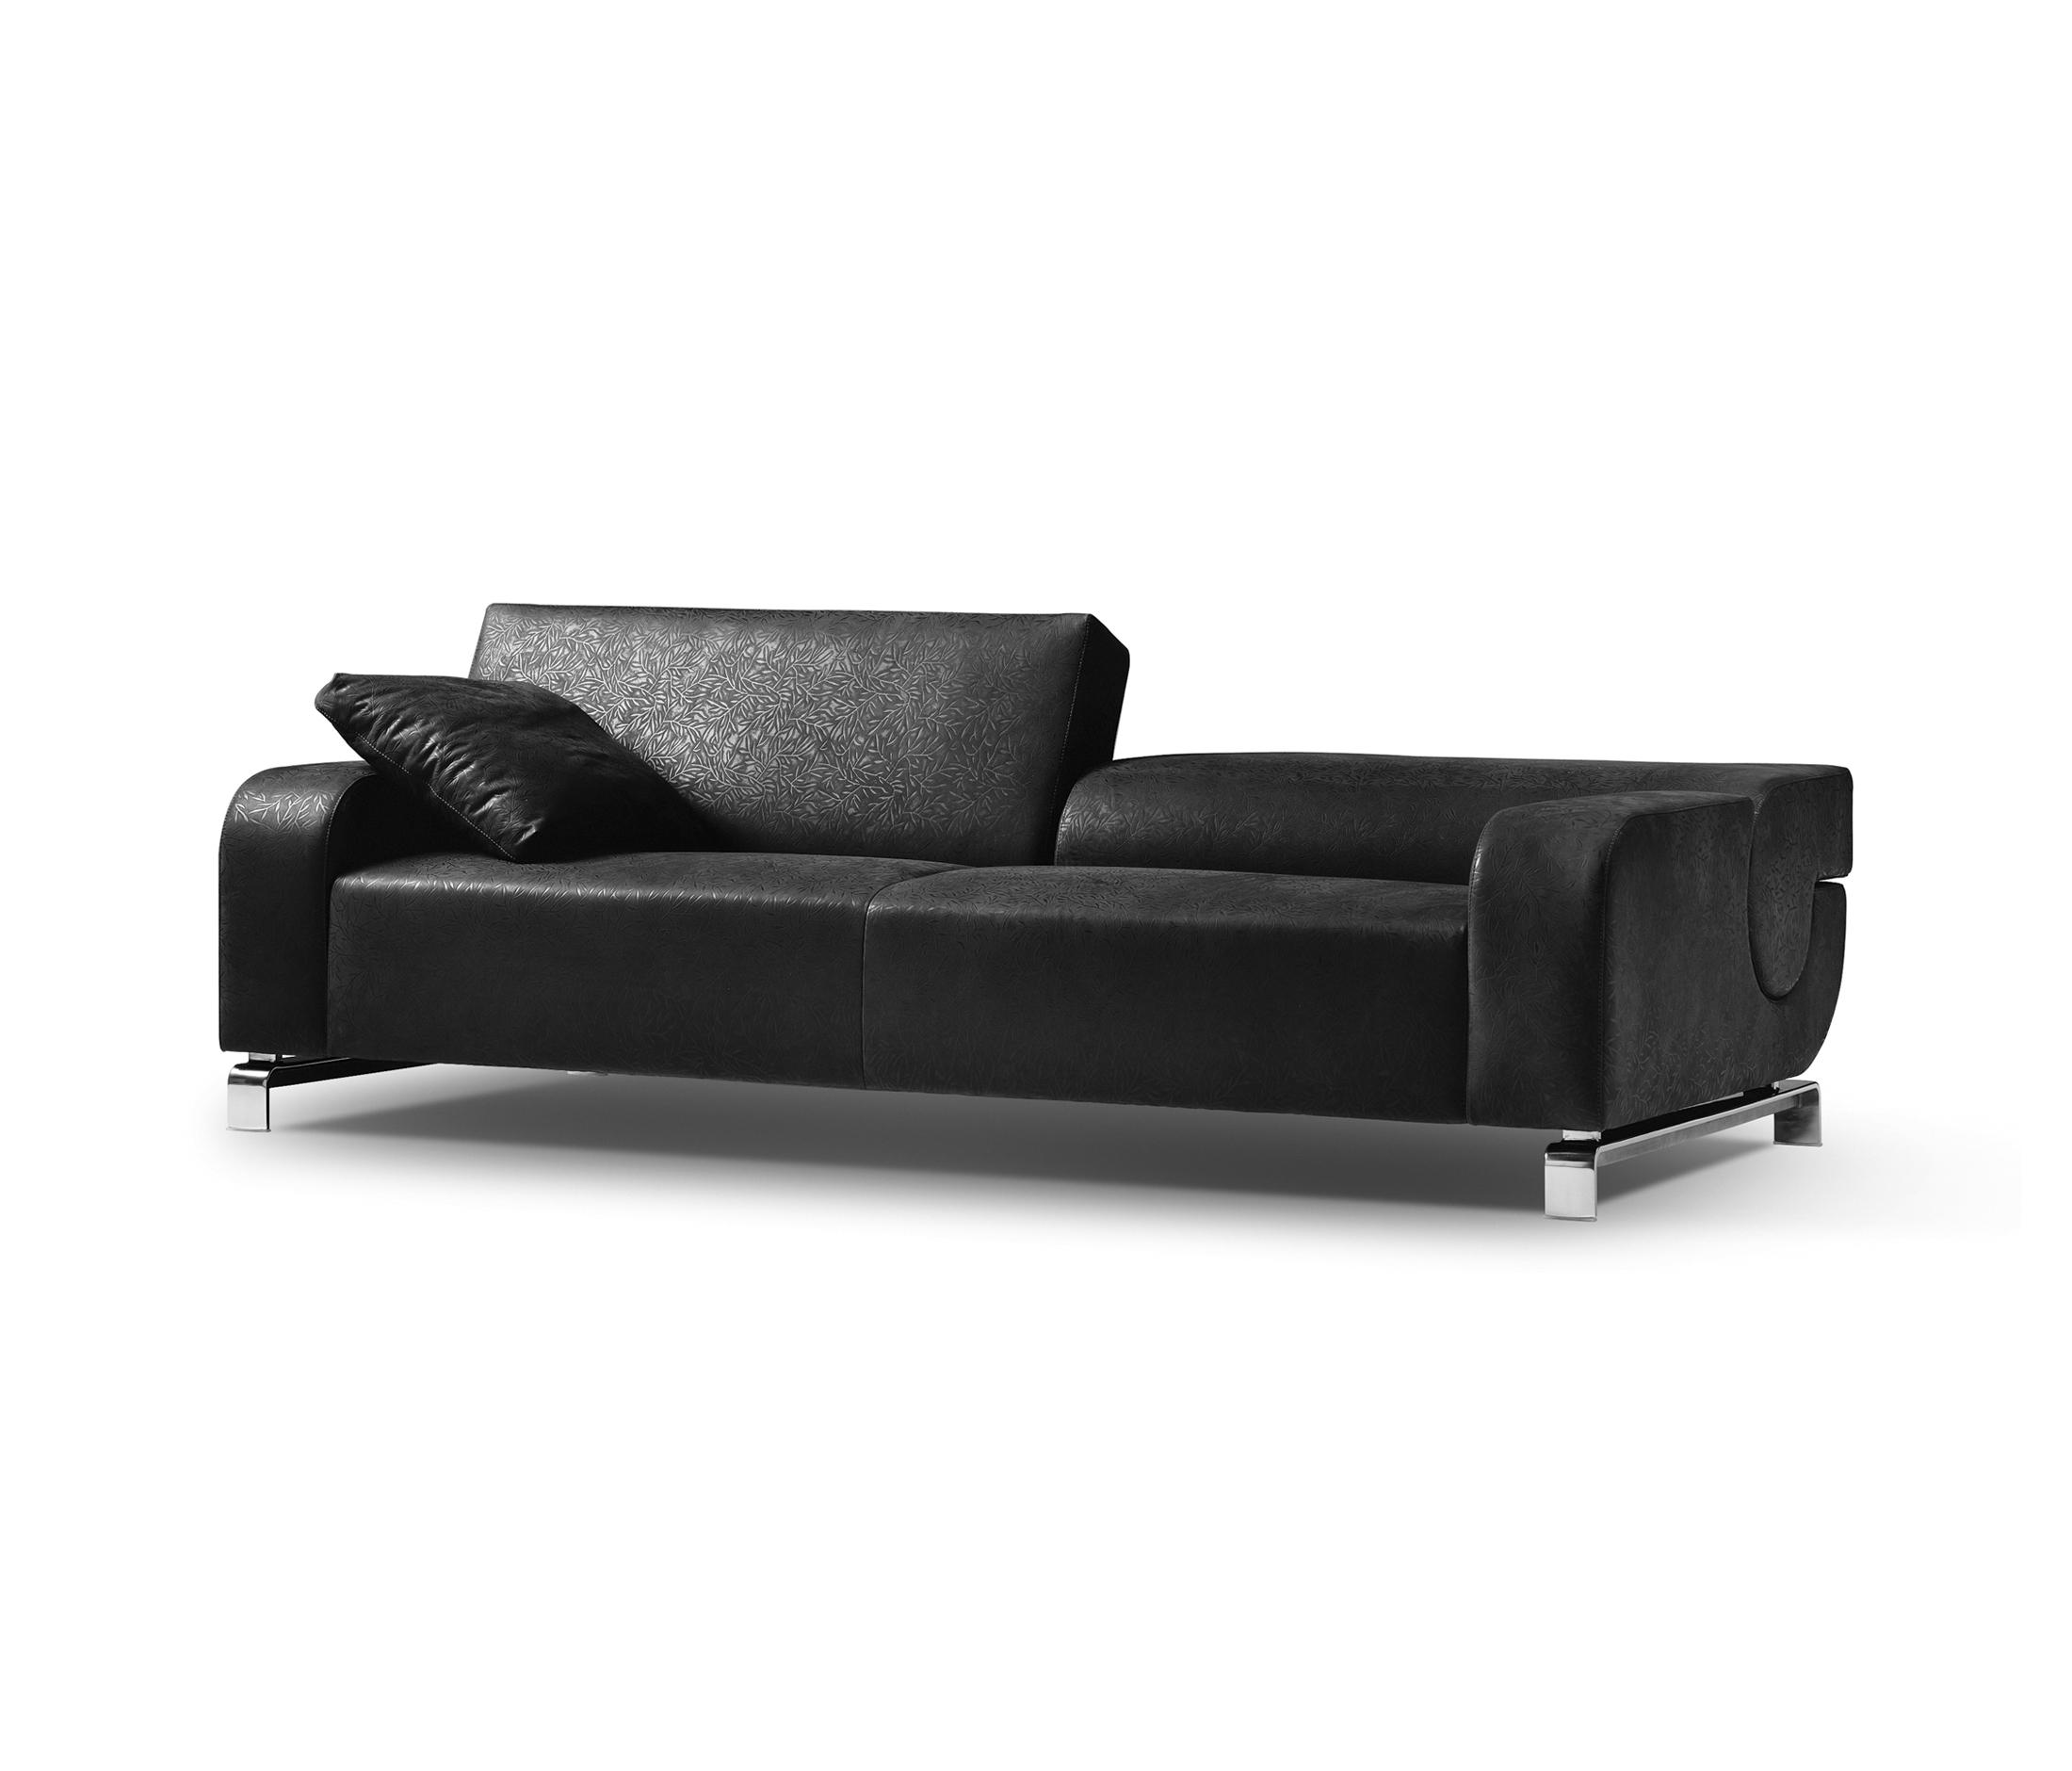 b flat sofa sofas from leolux architonic. Black Bedroom Furniture Sets. Home Design Ideas